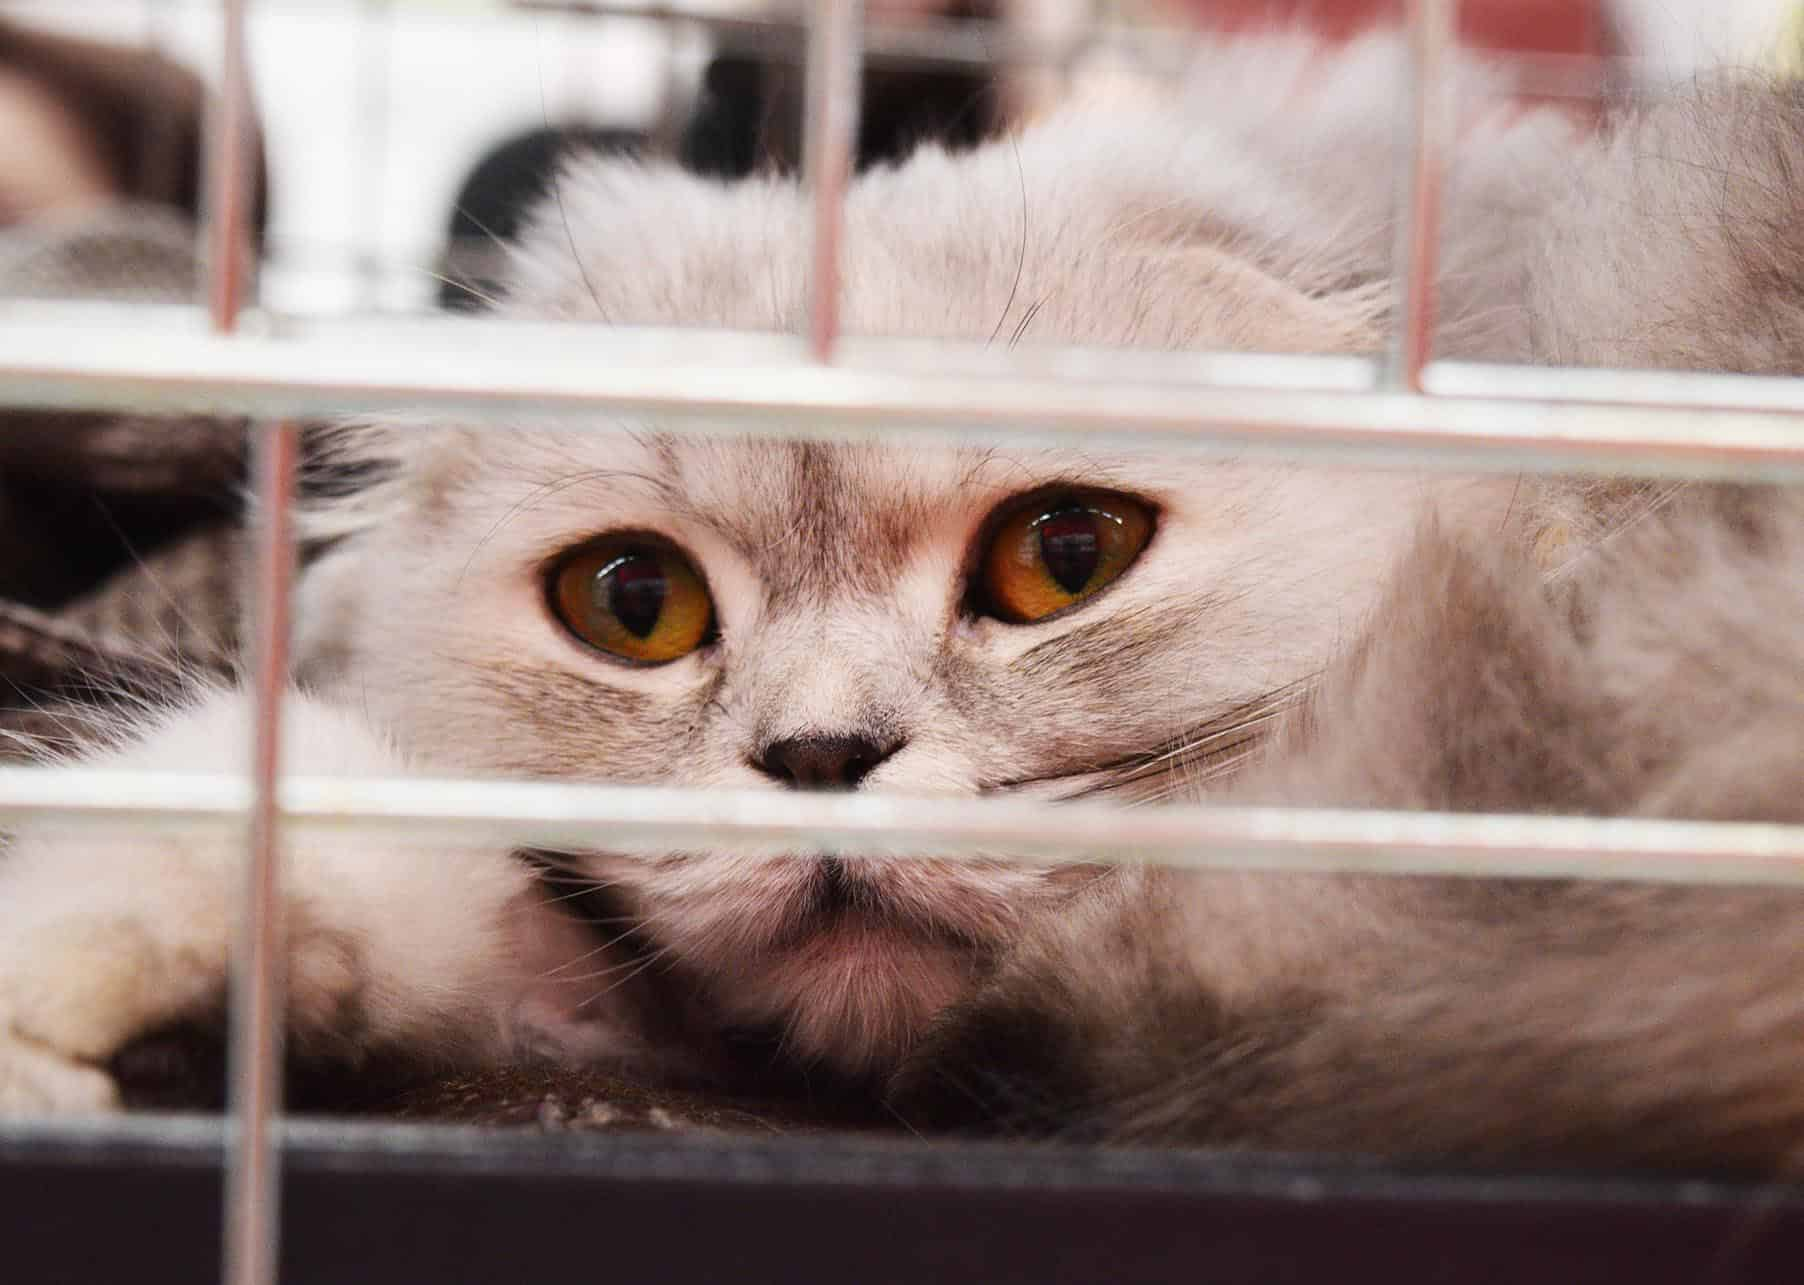 Cat in cage, ready to go to the vet by car